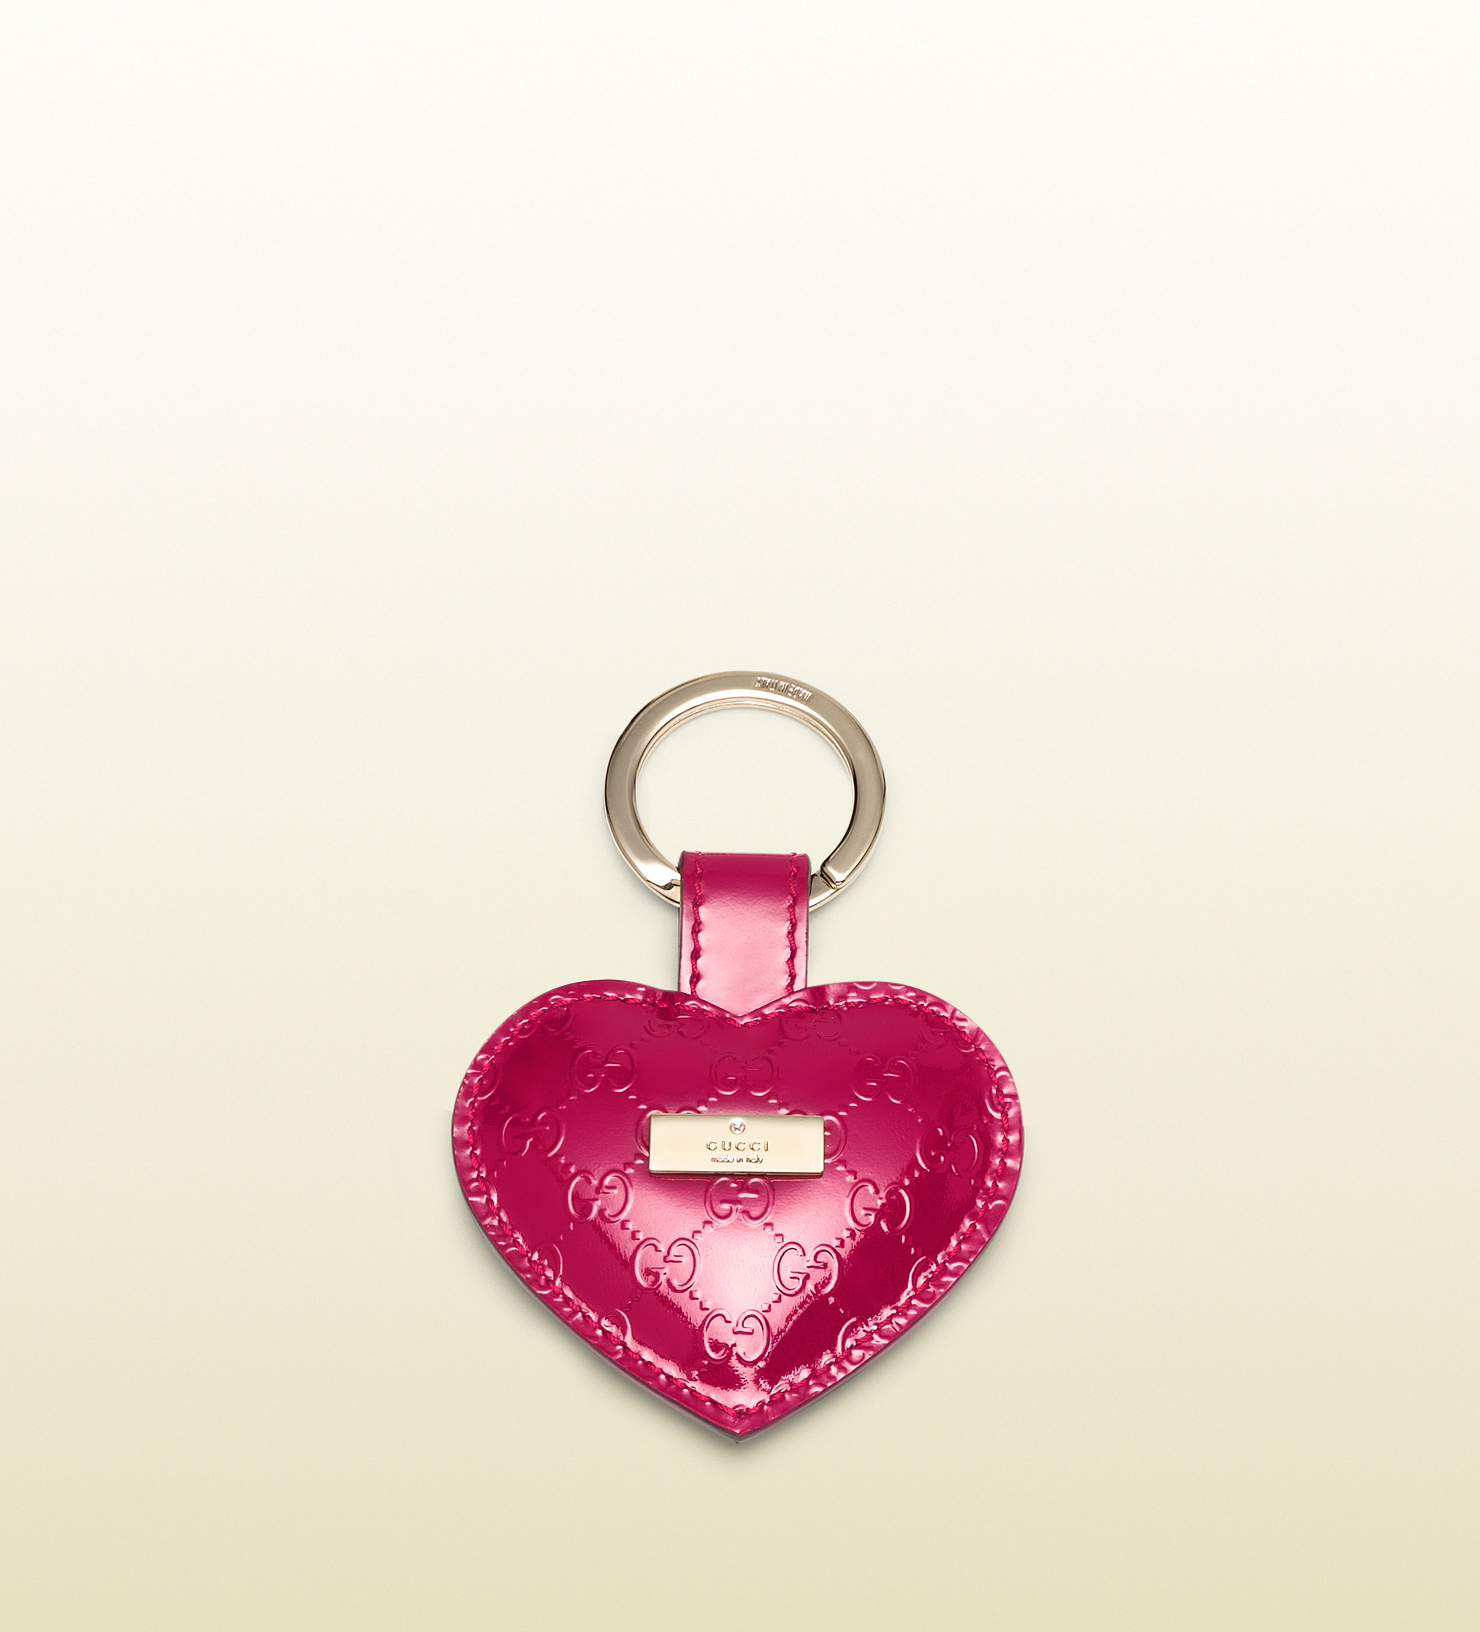 ccf95d7020d4 Lyst - Gucci Microssima Patent Leather Heart Key Ring in Pink